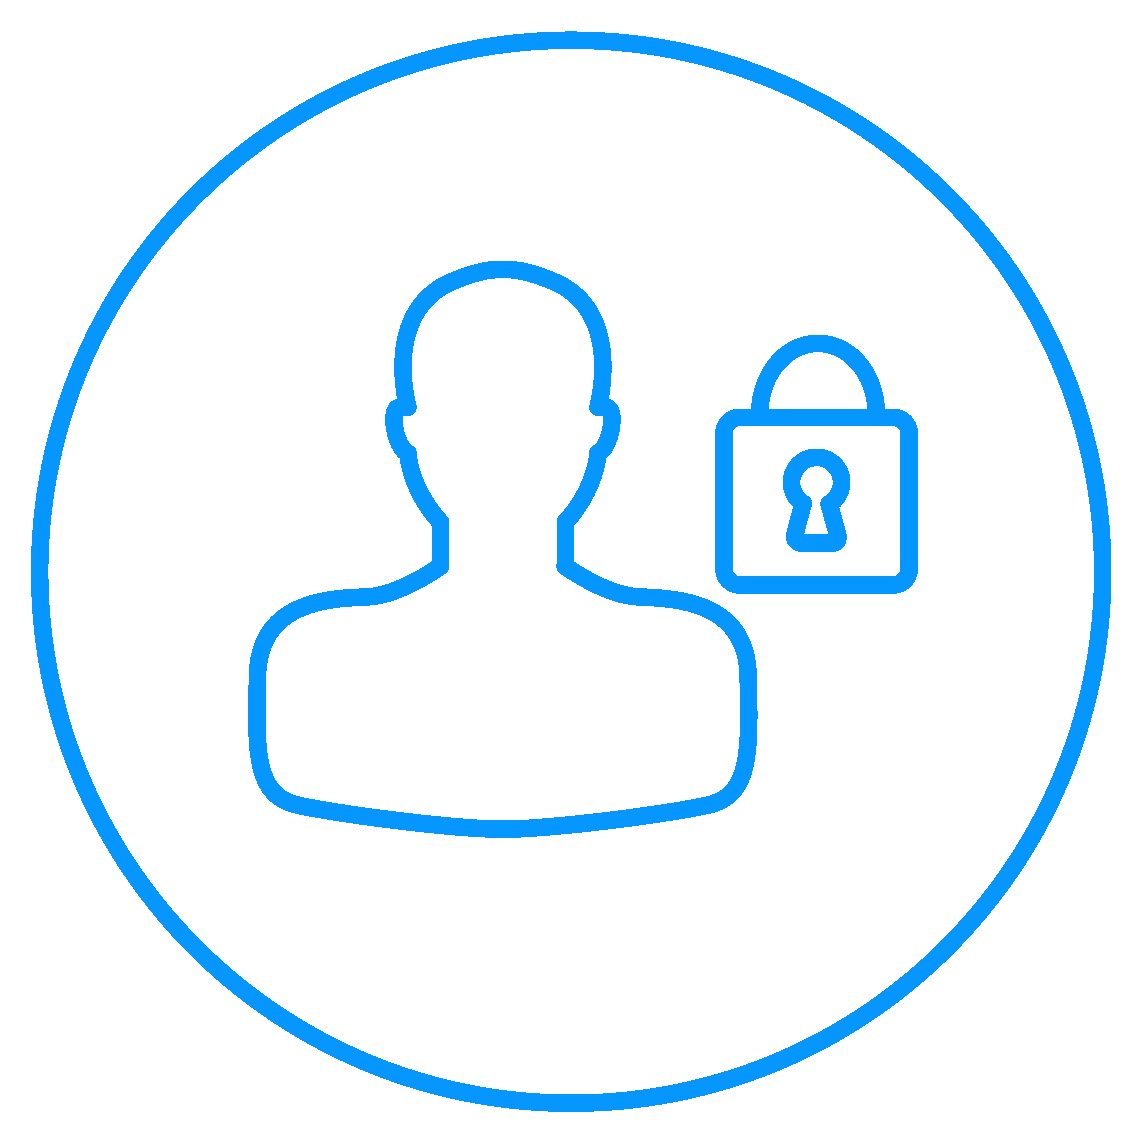 Atos cybersecurity Trusted Digital Identities blue